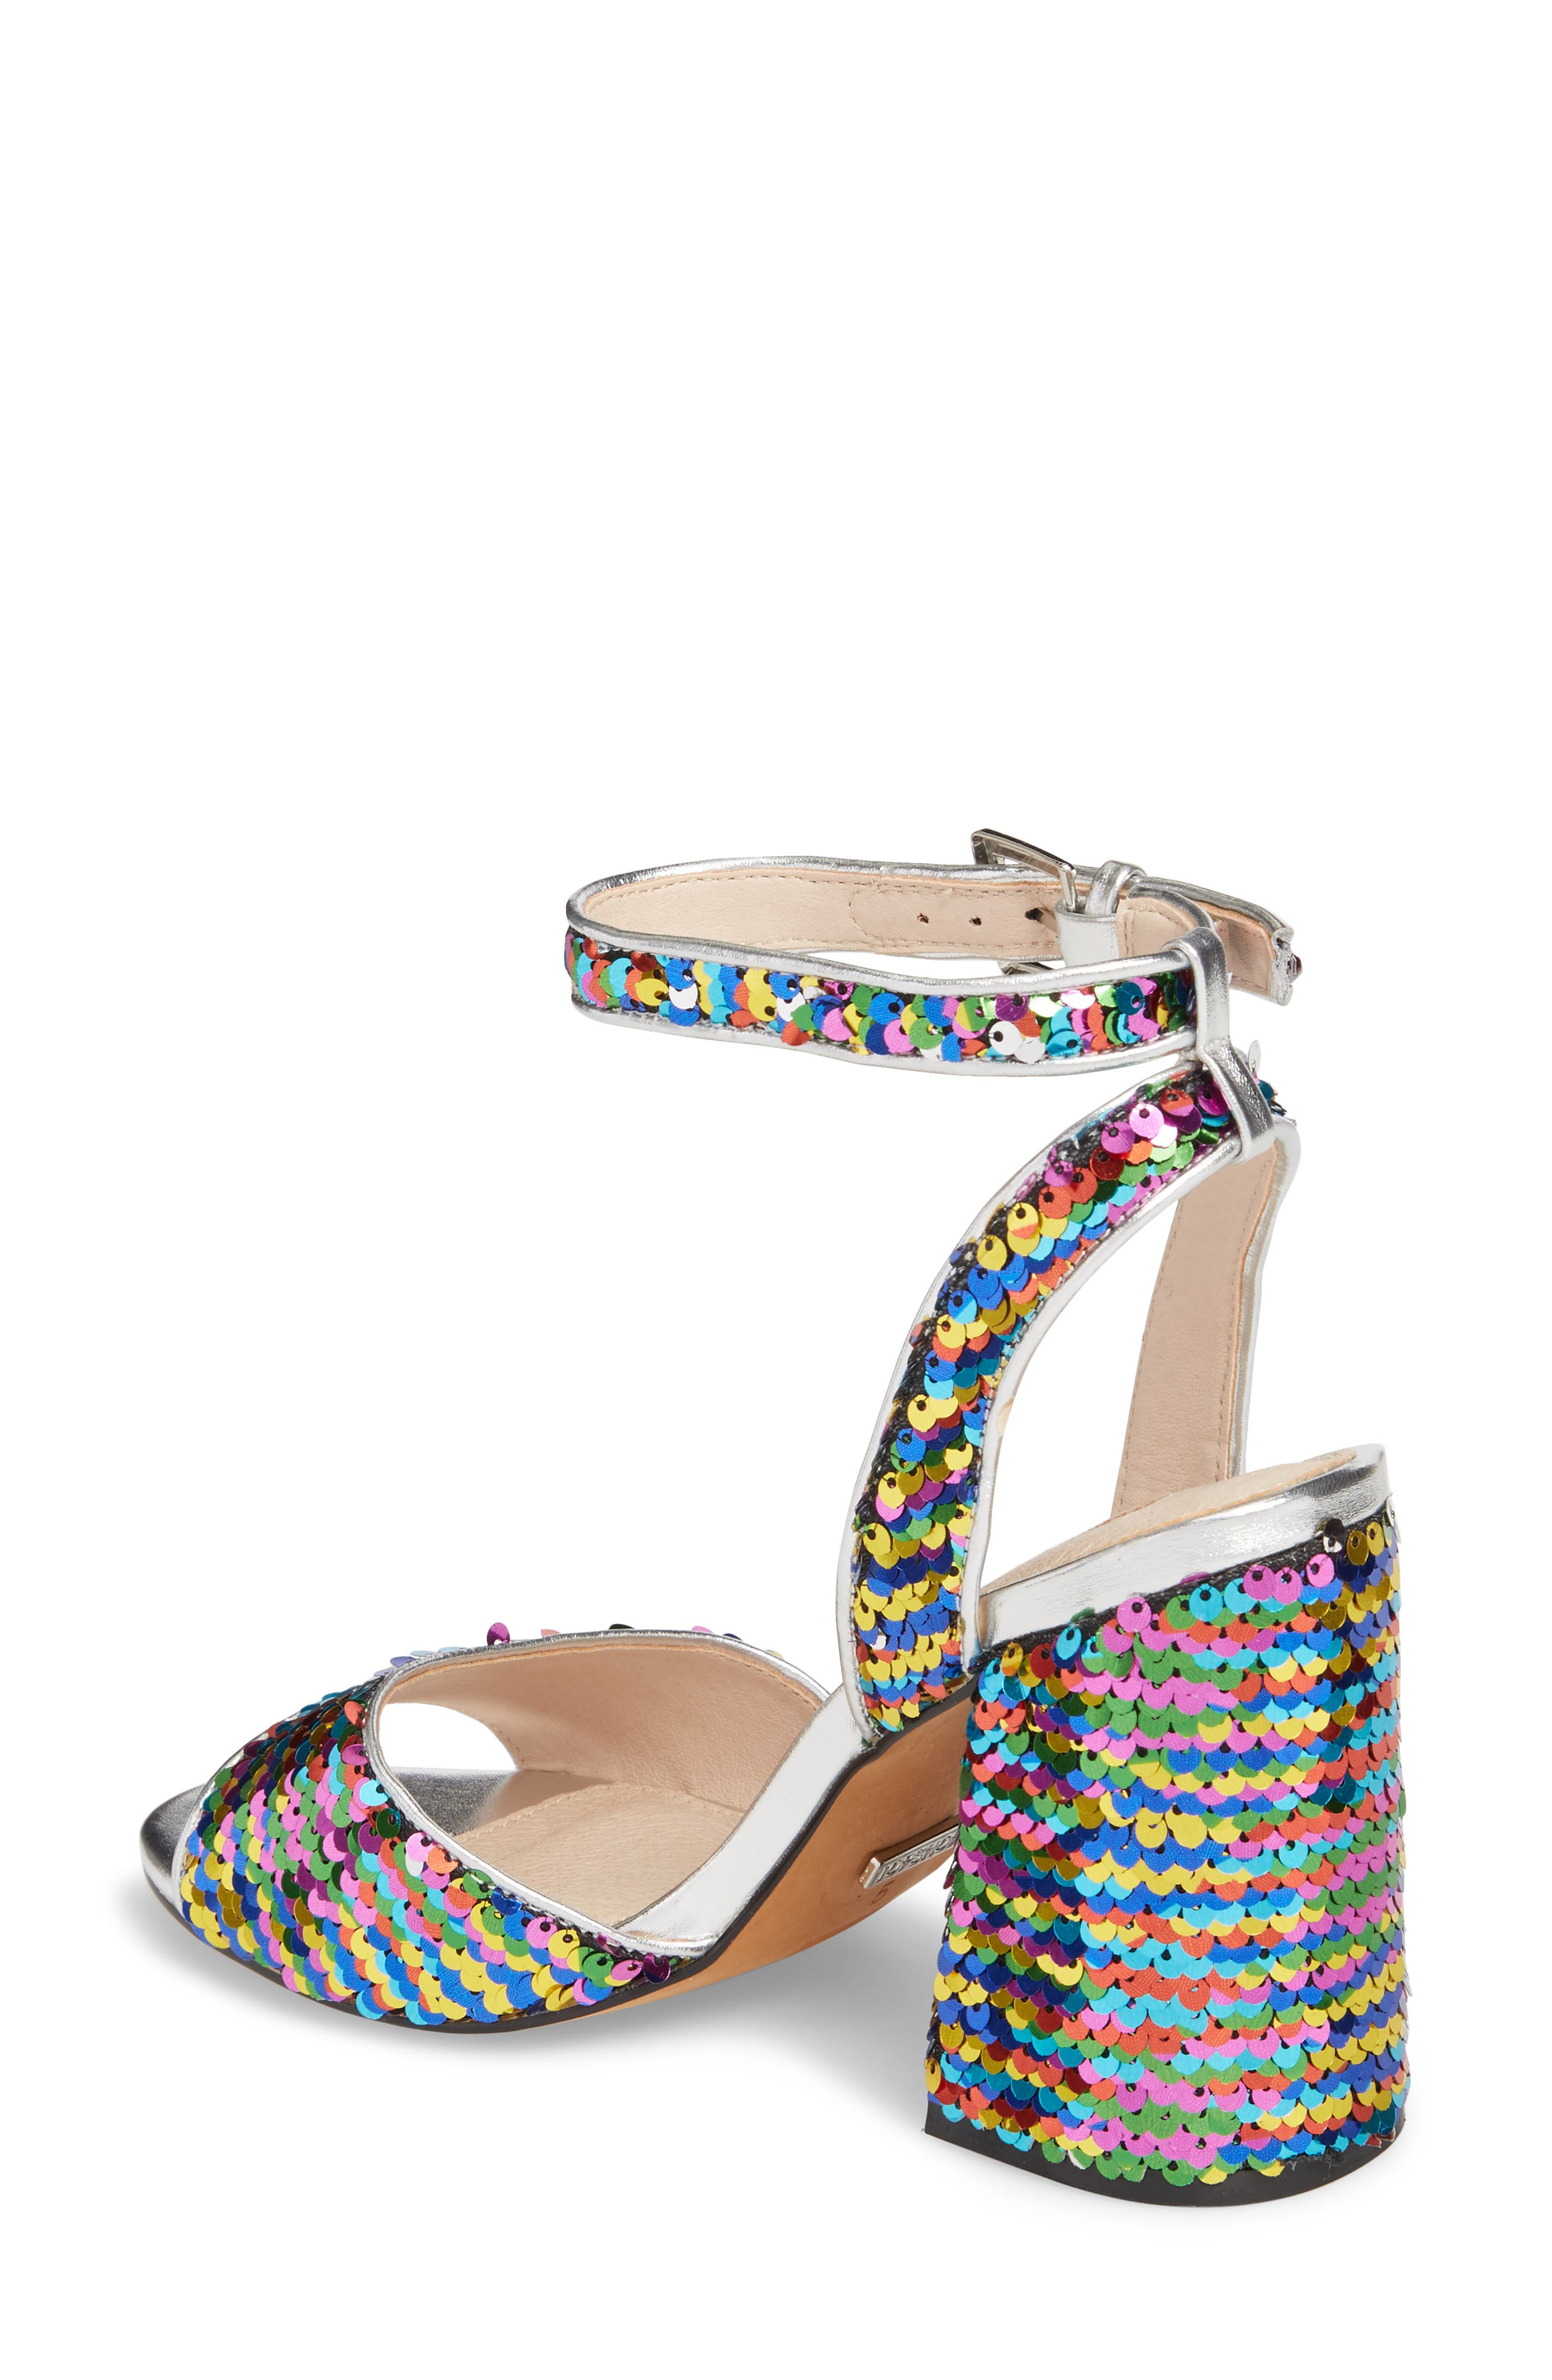 Reaction Sequin Block Heel Sandal,                             Alternate thumbnail 2, color,                             Silver Multi